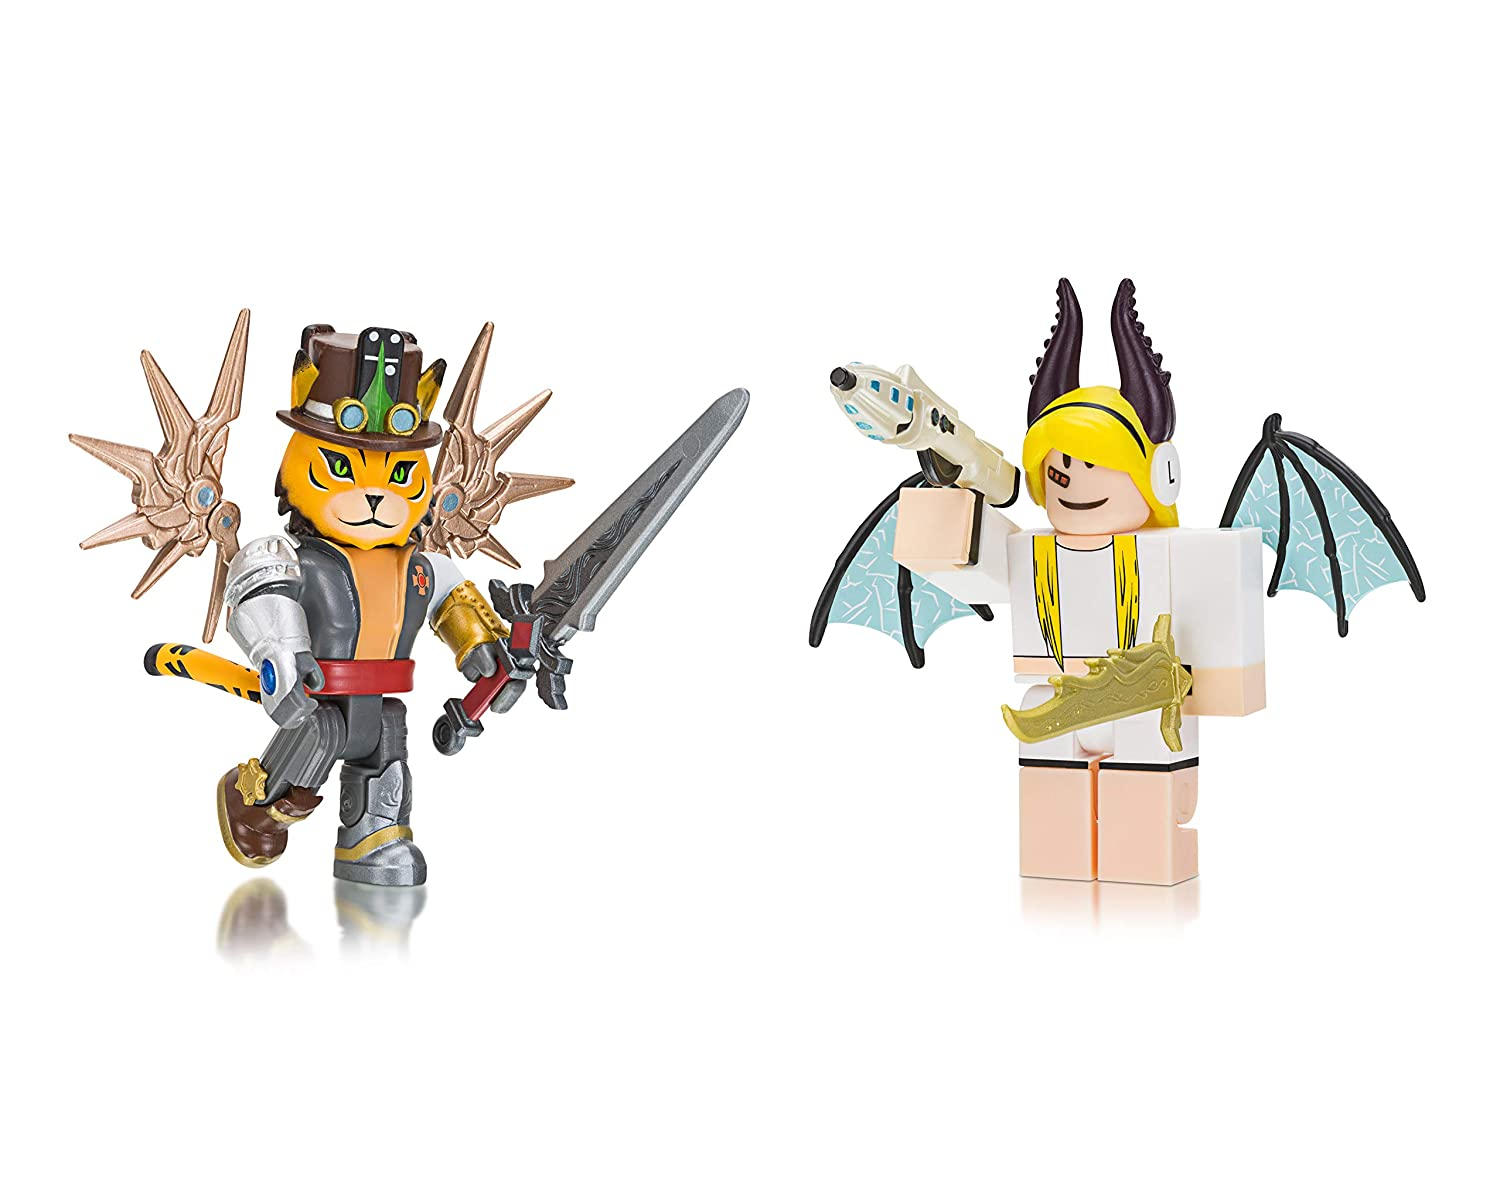 Roblox Celebrity Collection Tigercaptain Erythia Two Figure Pack - toy knife roblox